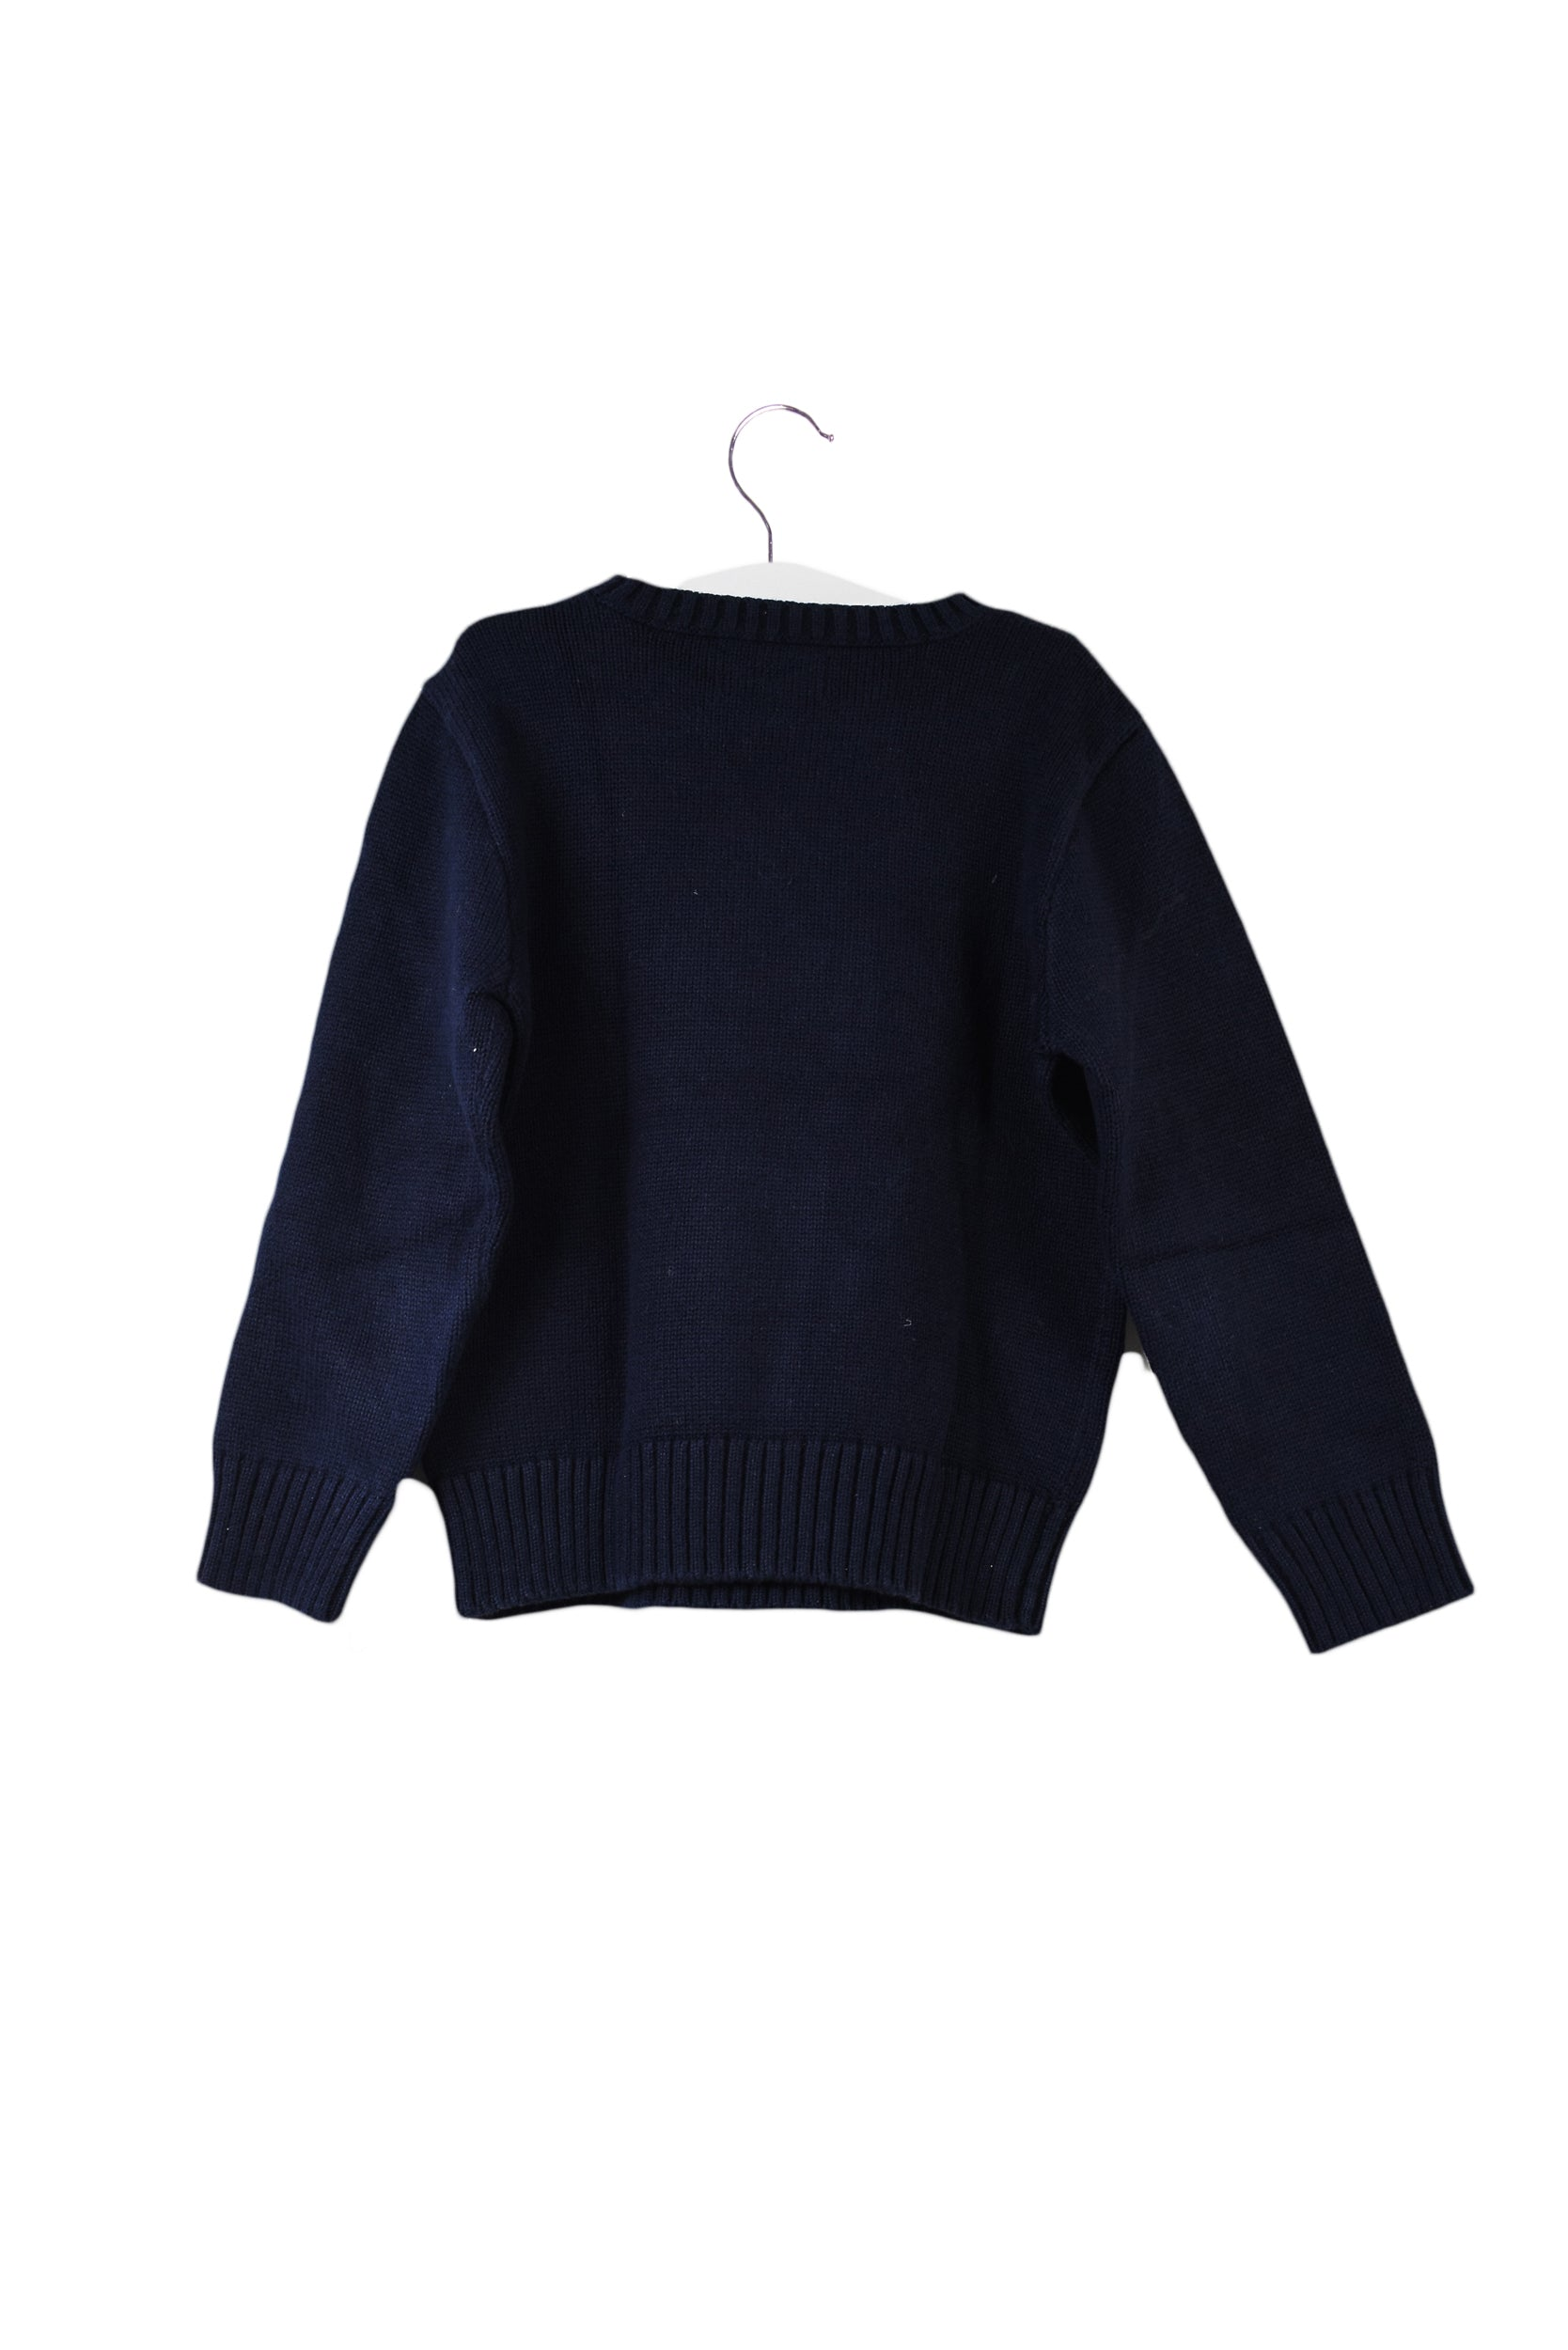 Knit Sweater 4T at Retykle